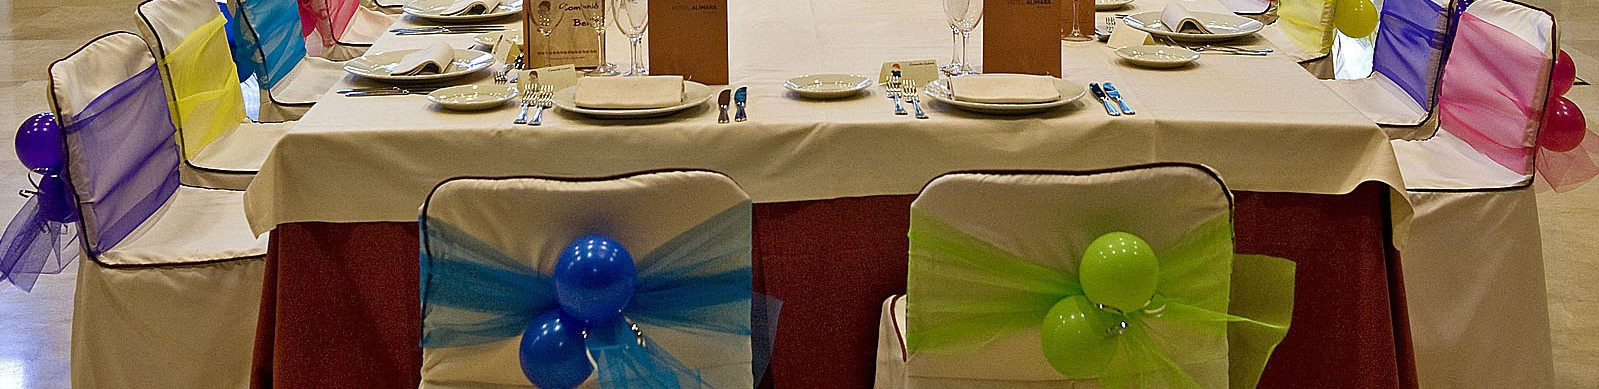 DecoracioFestaInfantil1